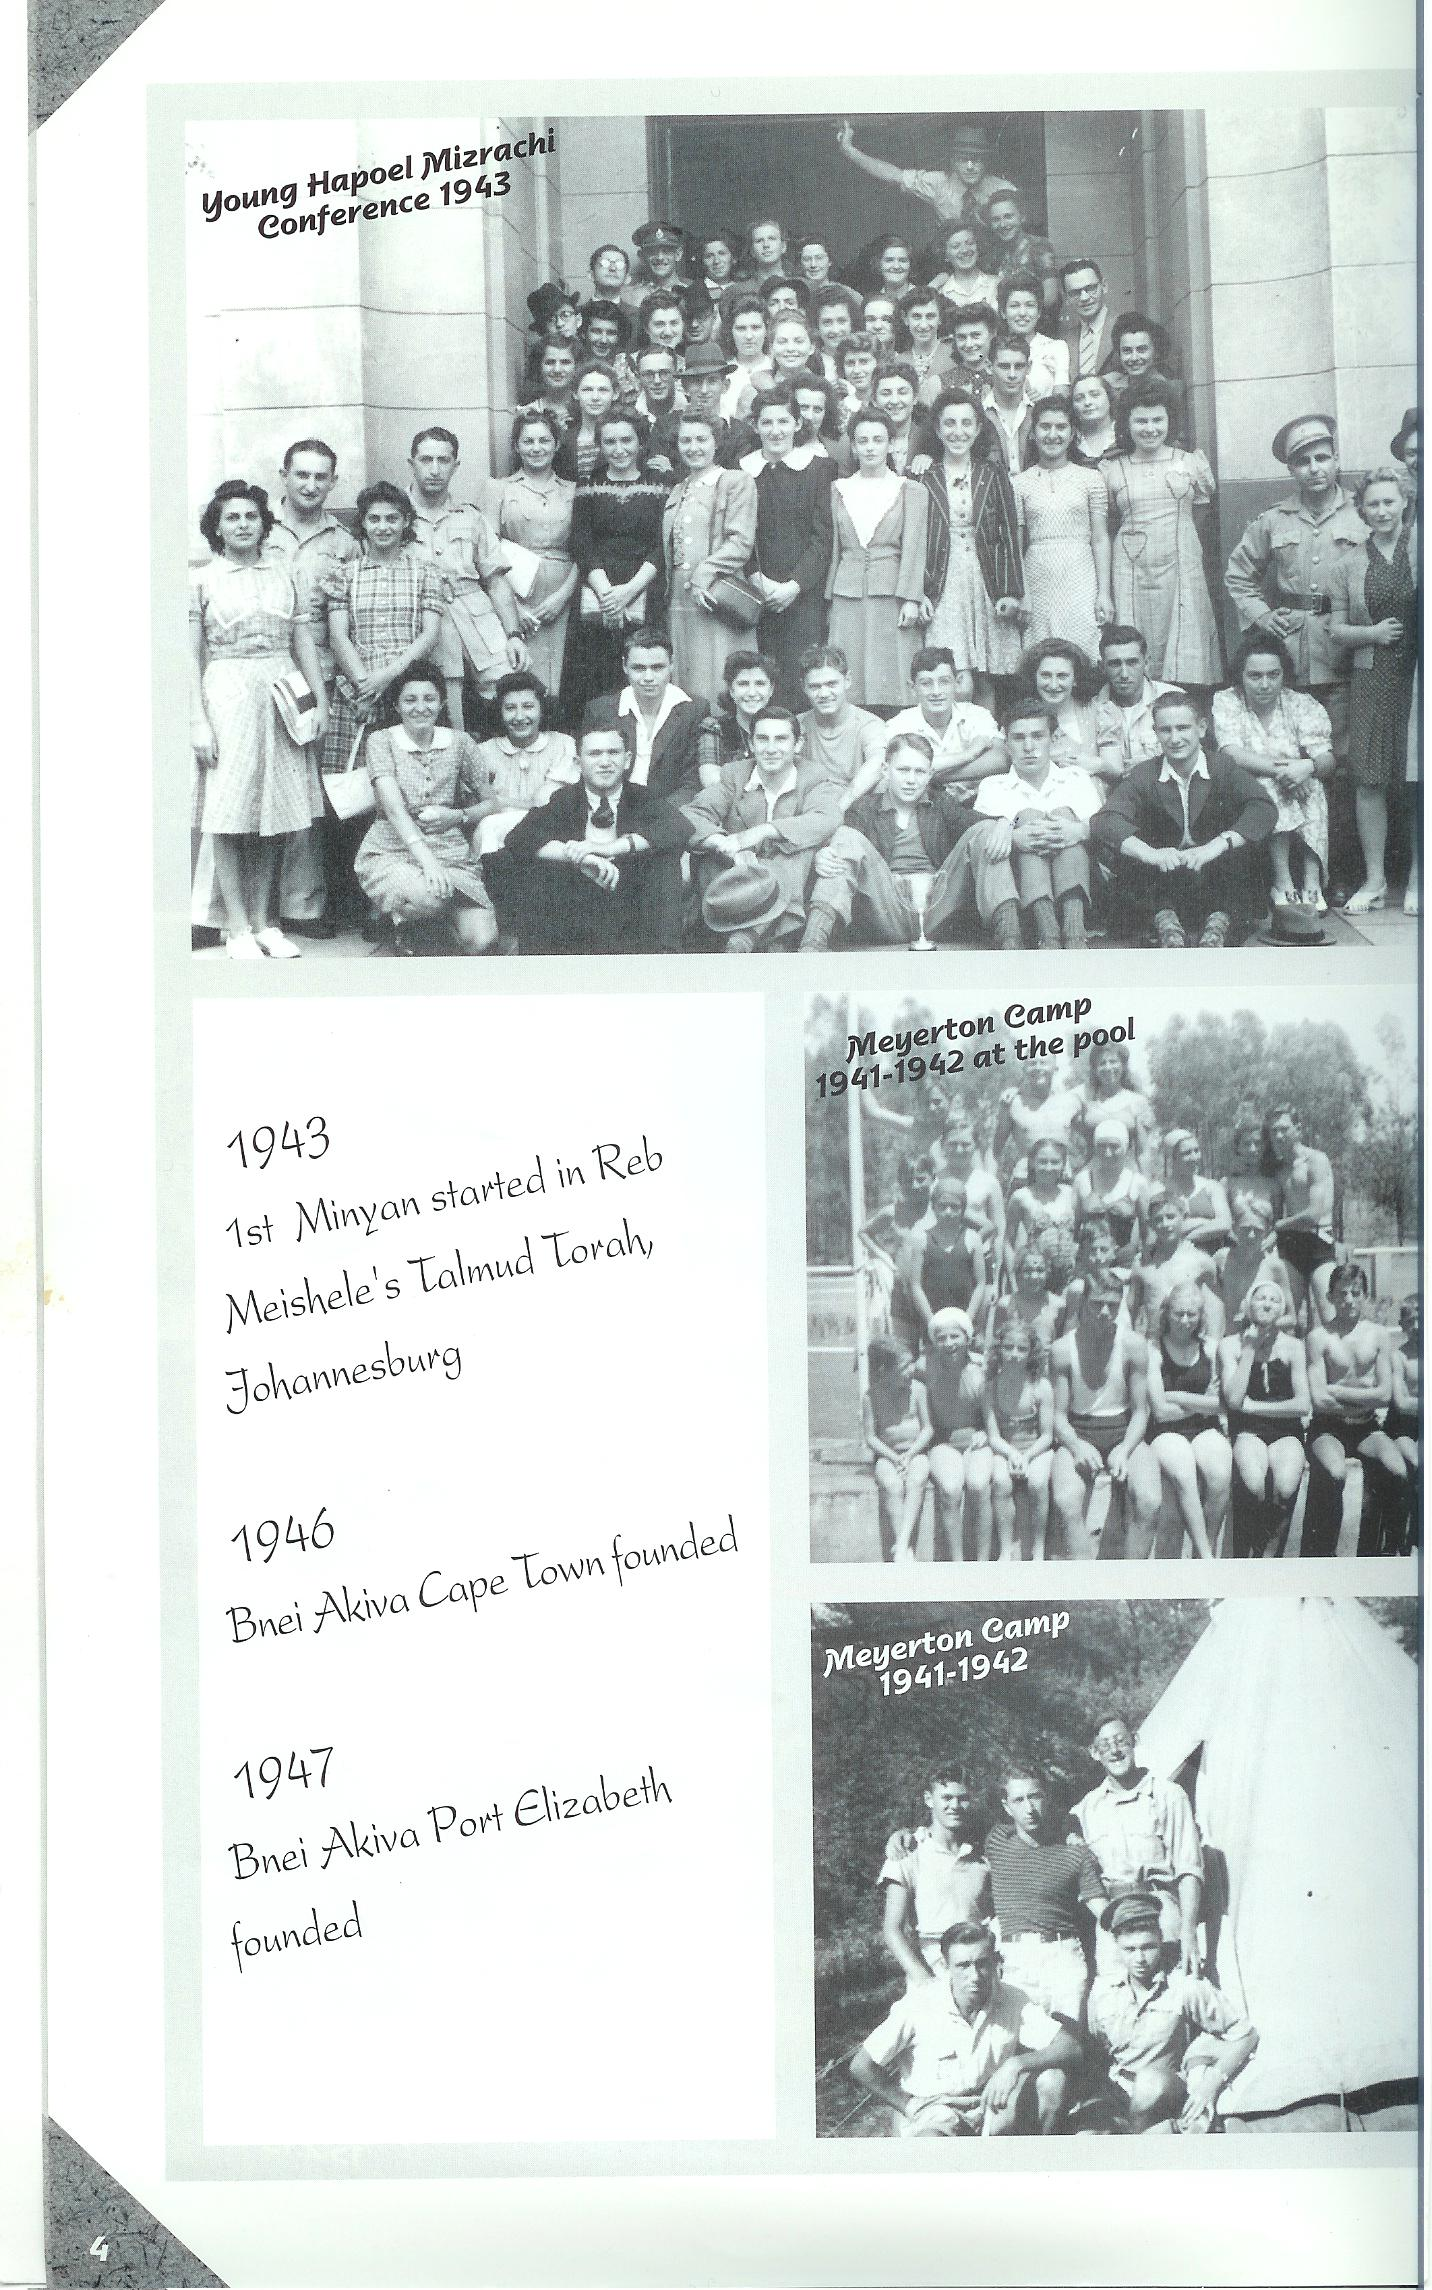 Pictures History of Bnei Akiva South Africa